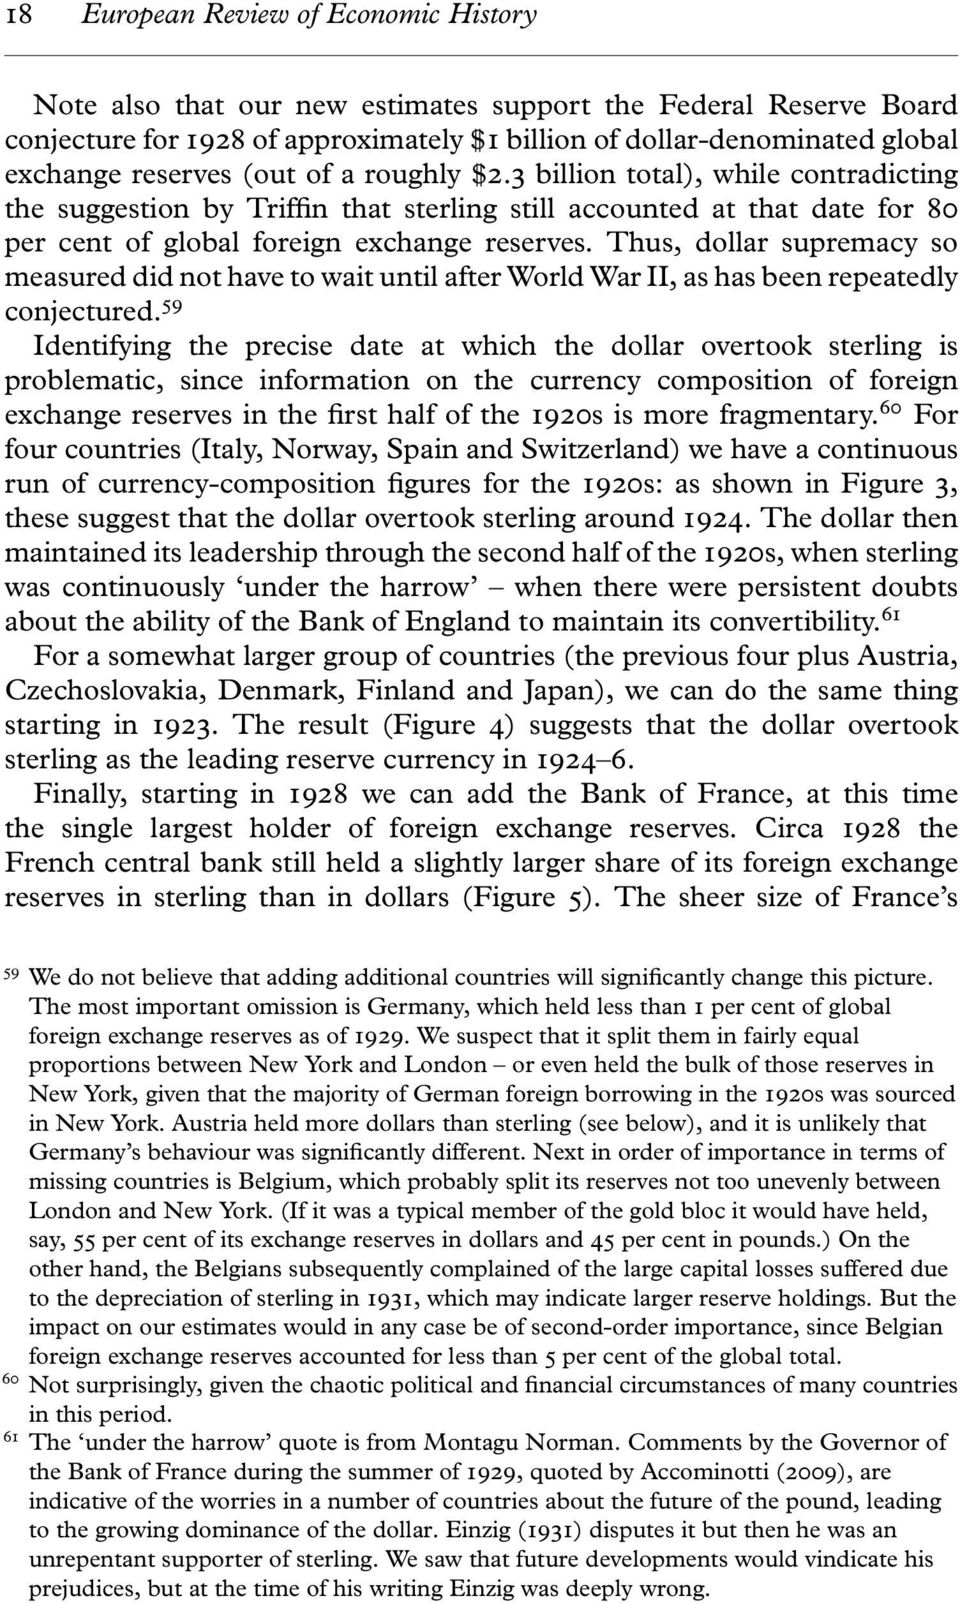 Thus, dollar supremacy so measured did not have to wait until after World War II, as has been repeatedly conjectured.